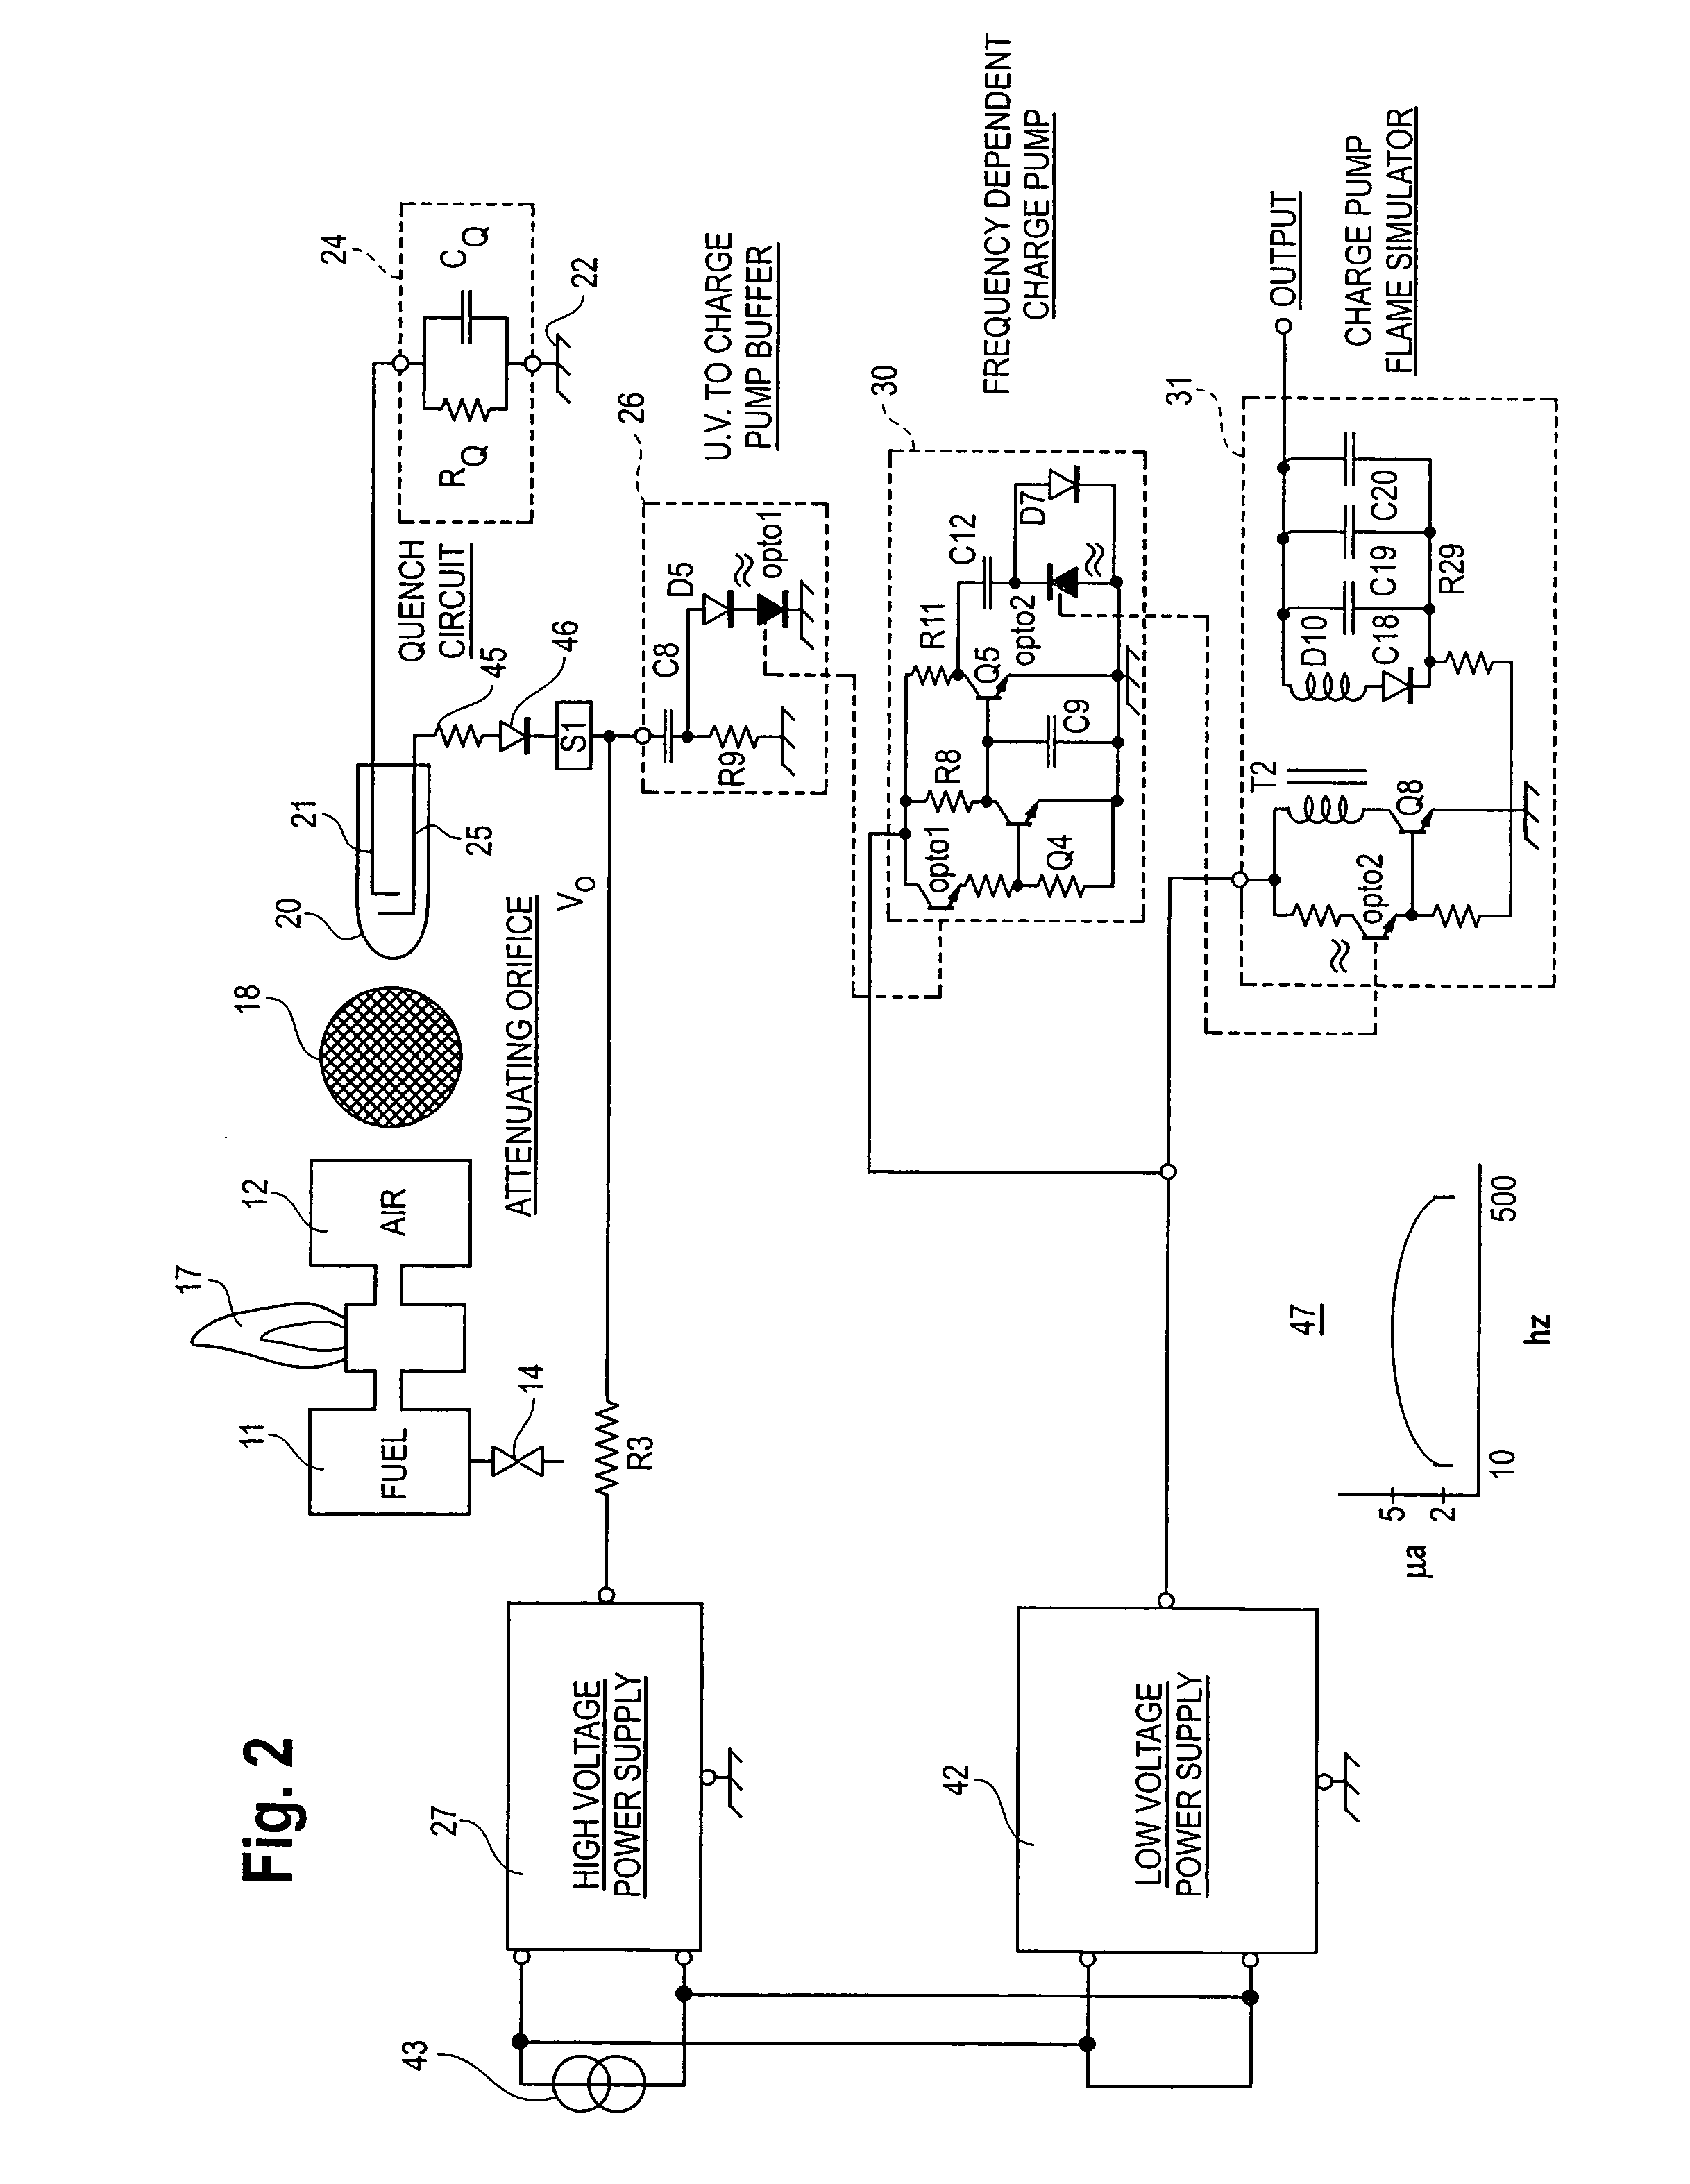 Index6 likewise Carte Du Monde Tatouage Temporaire additionally File Instrumentation  lifier 3Op besides 1997 Infiniti Qx4 Wiring Diagram And Electrical System Service And Troubleshooting besides US5720231. on amplifier drawing